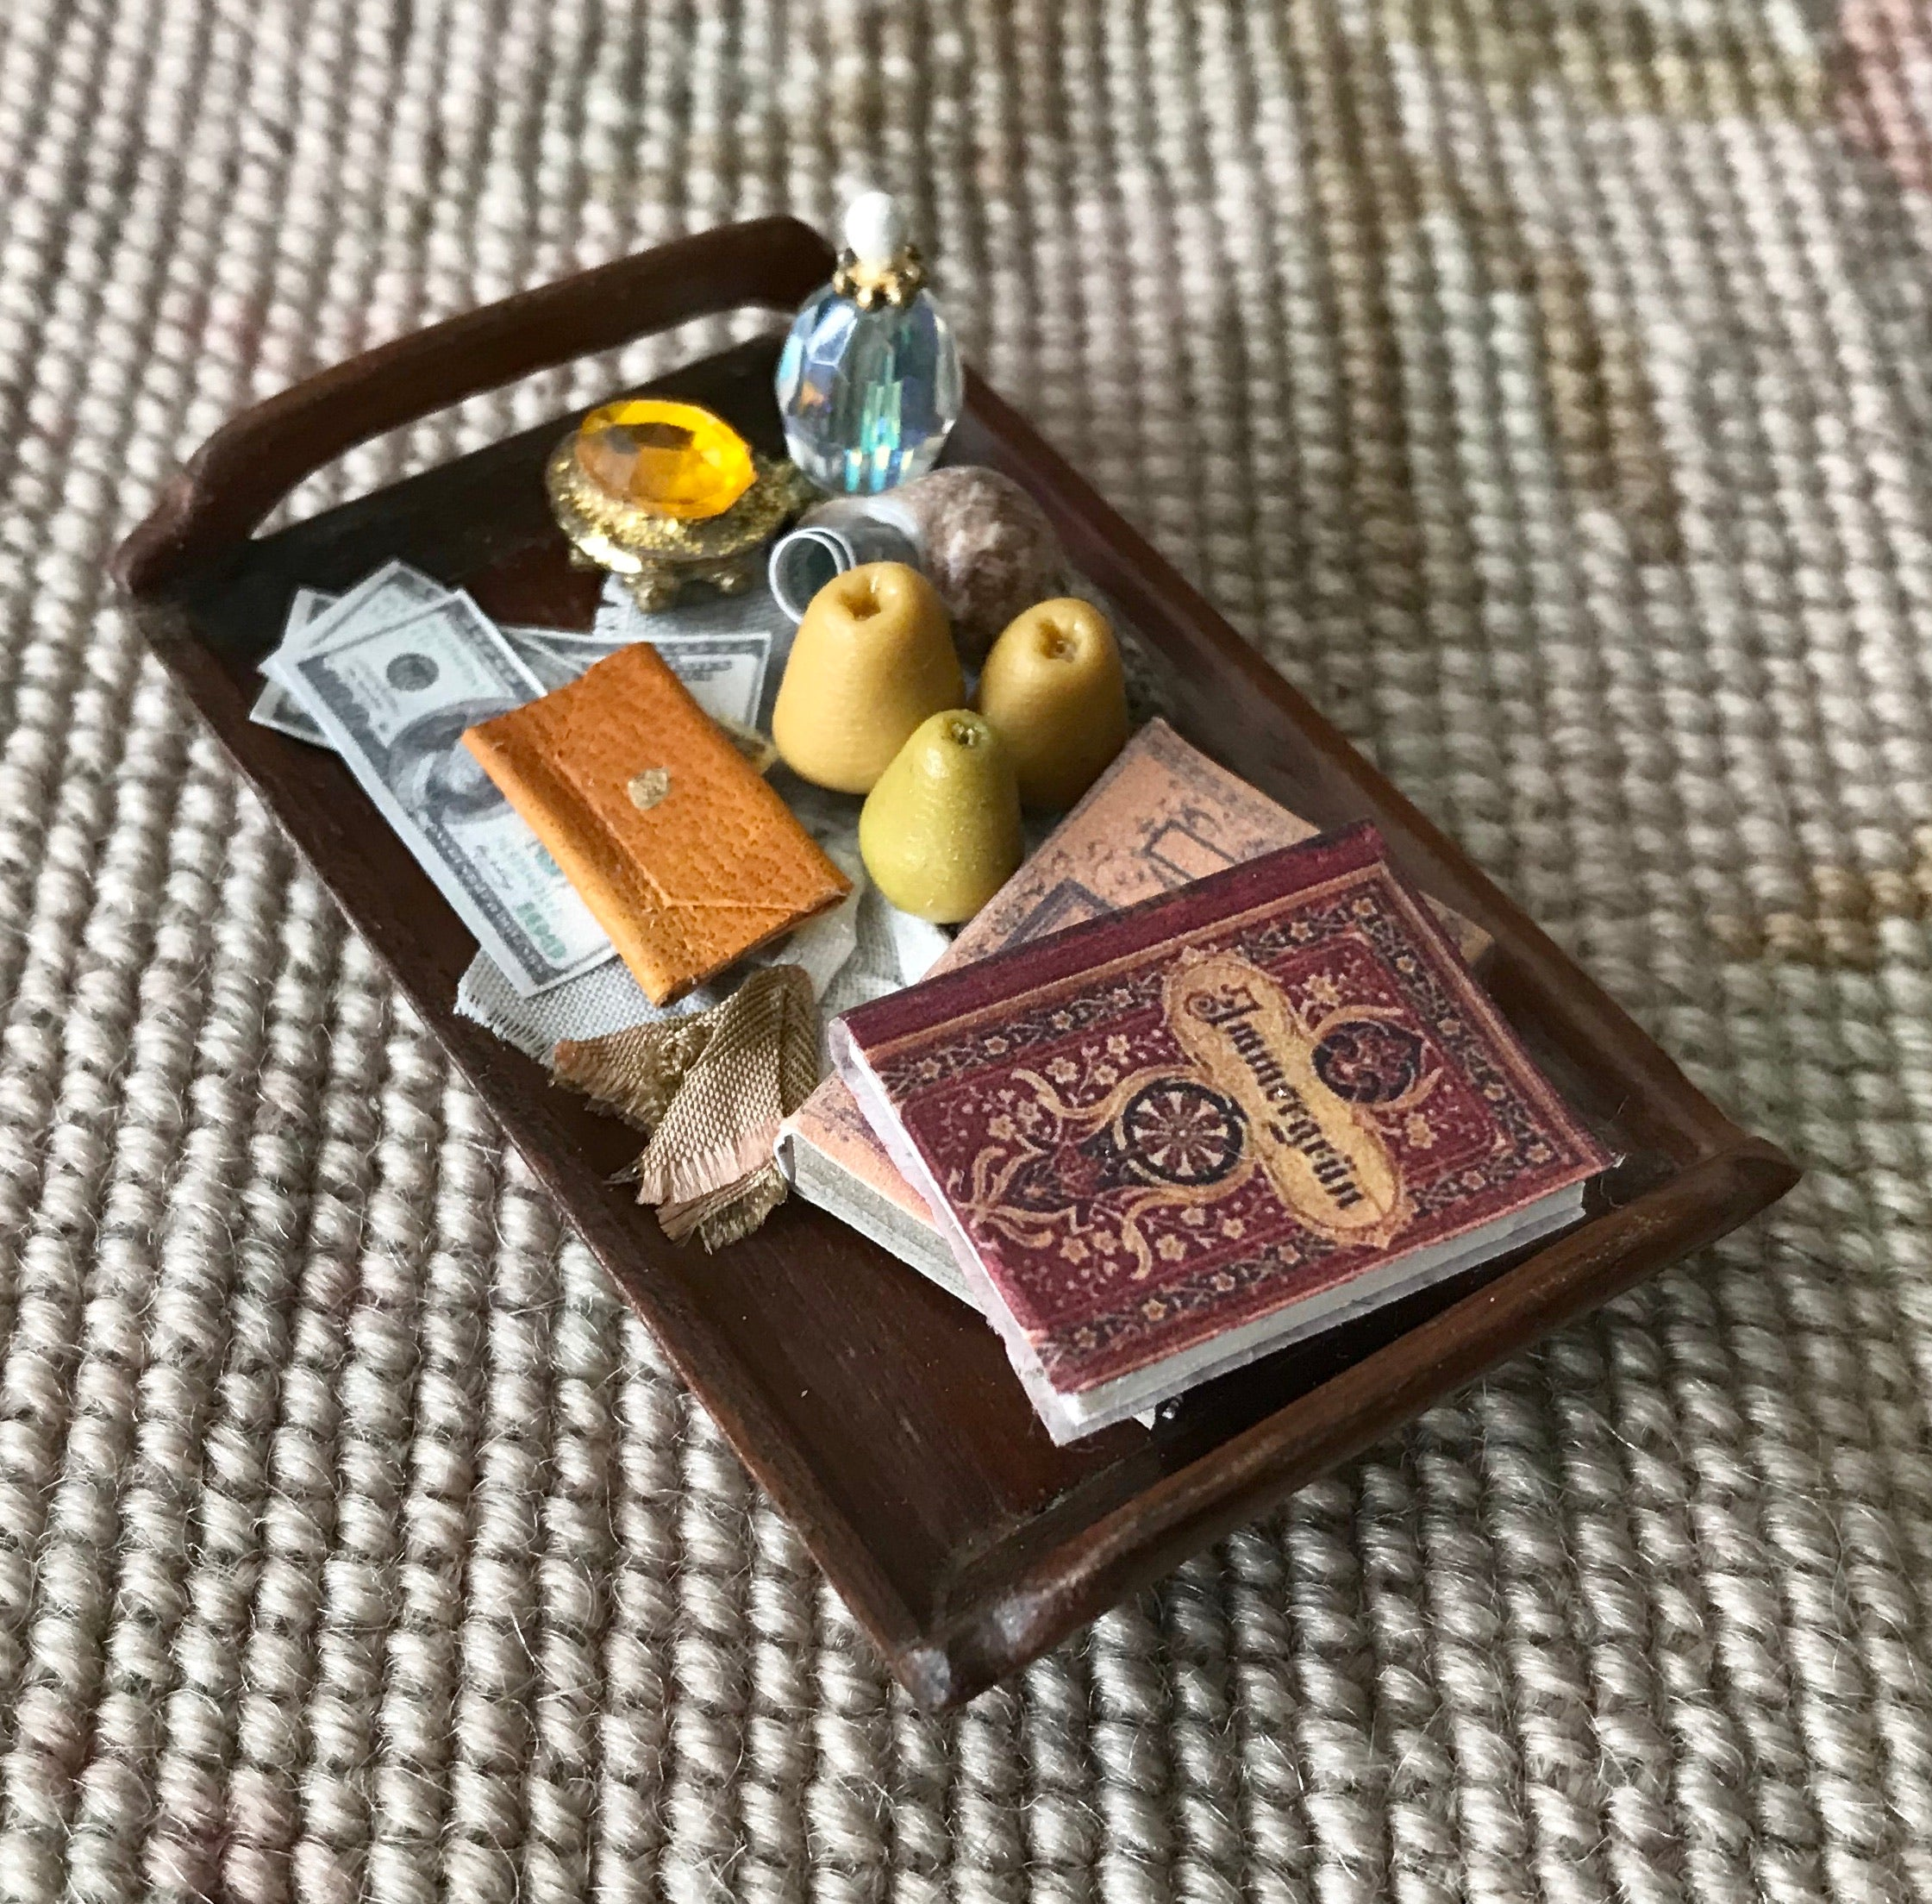 Tray Dressed Books Fruit Money Purse 1:12 Dollhouse Miniature